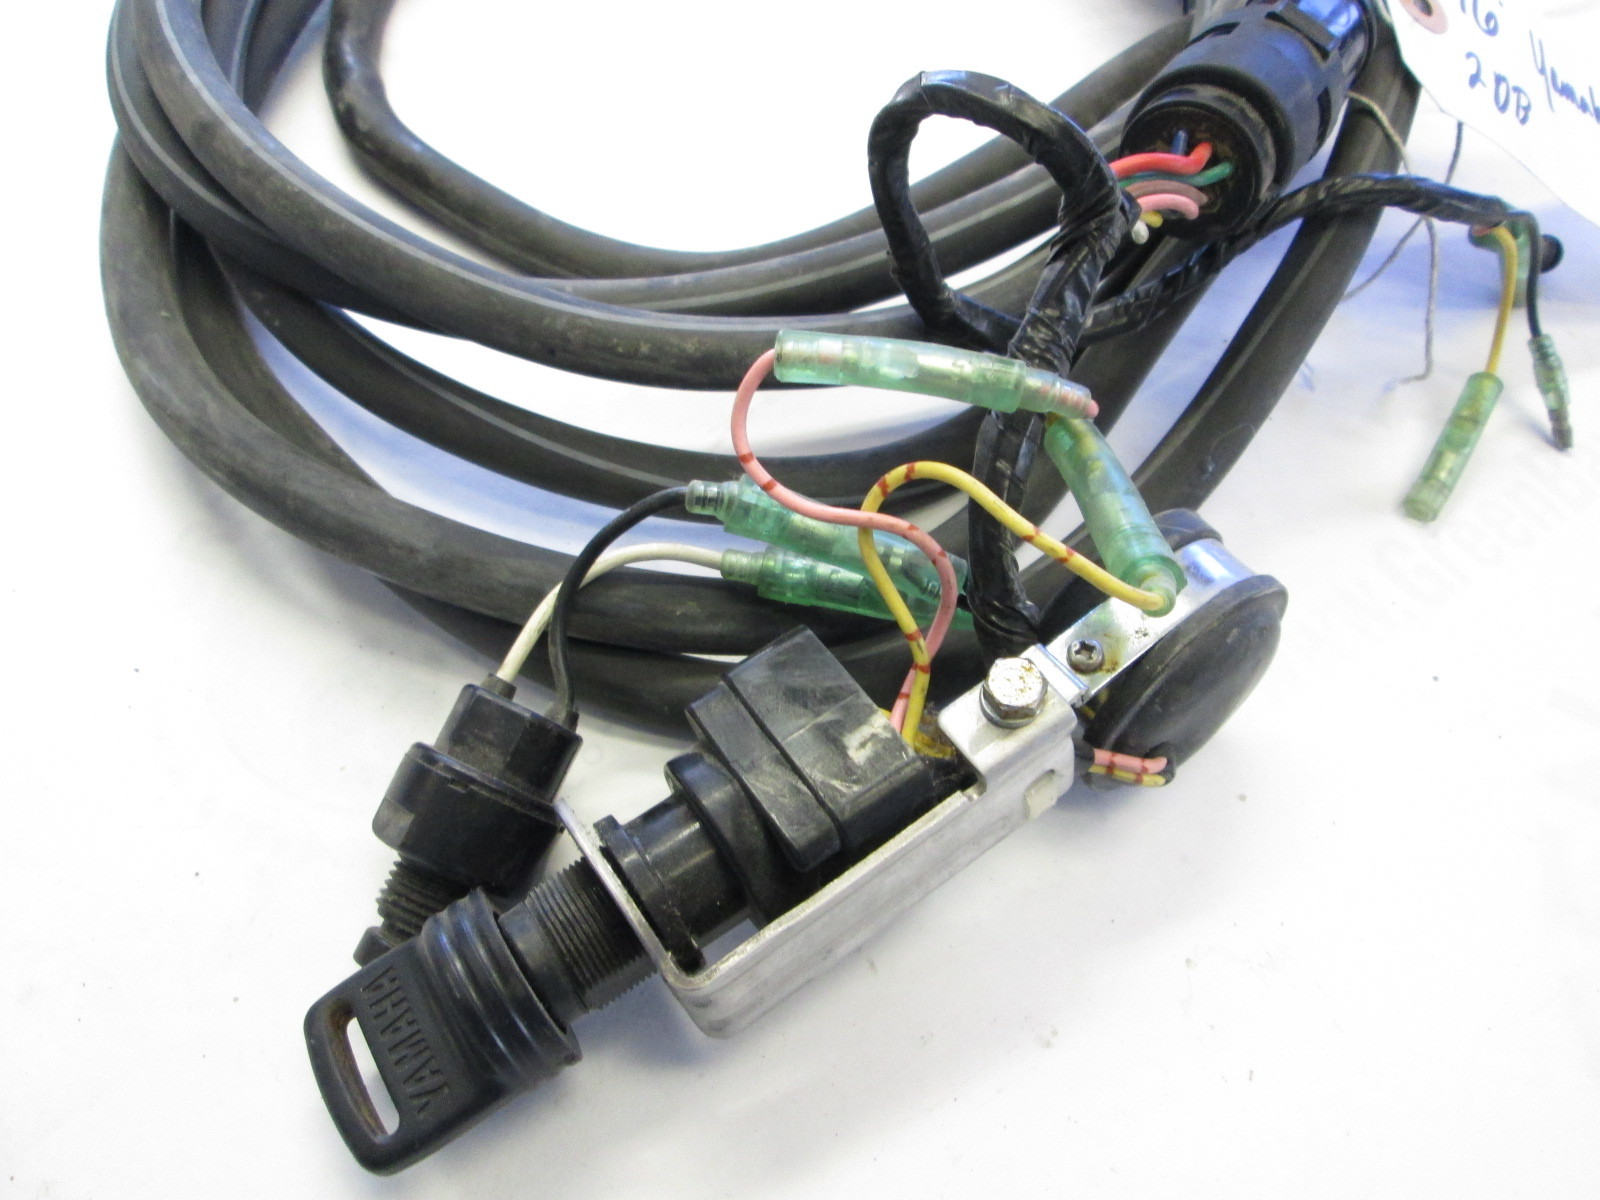 yamaha outboard 16 ft engine to dash key switch wire harness to motor